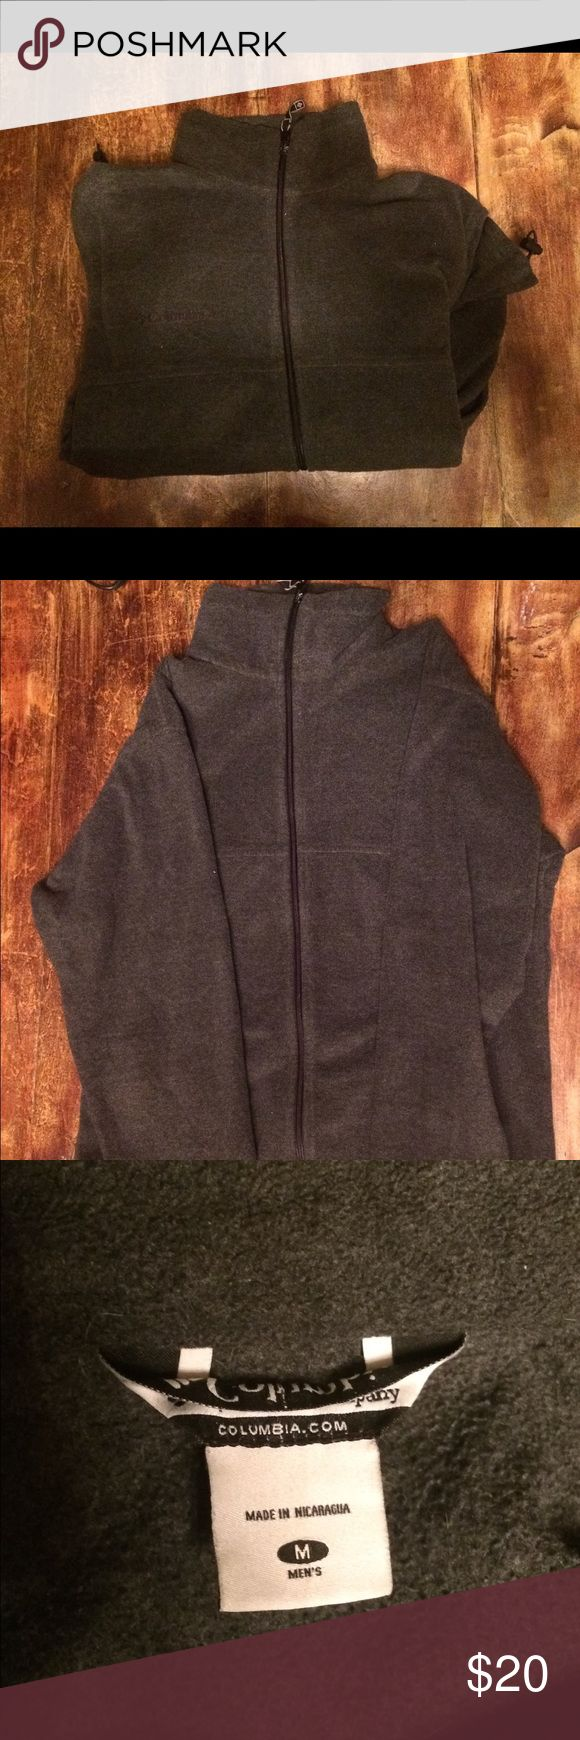 Mens Columbia grey fleece in medium Good shape. No stains or tears.  Definitely some pilling from age. It's a medium but I usually wear a large.  If you're a large Marmot, Patagonia, etc you might wear this medium. Columbia Jackets & Coats Performance Jackets